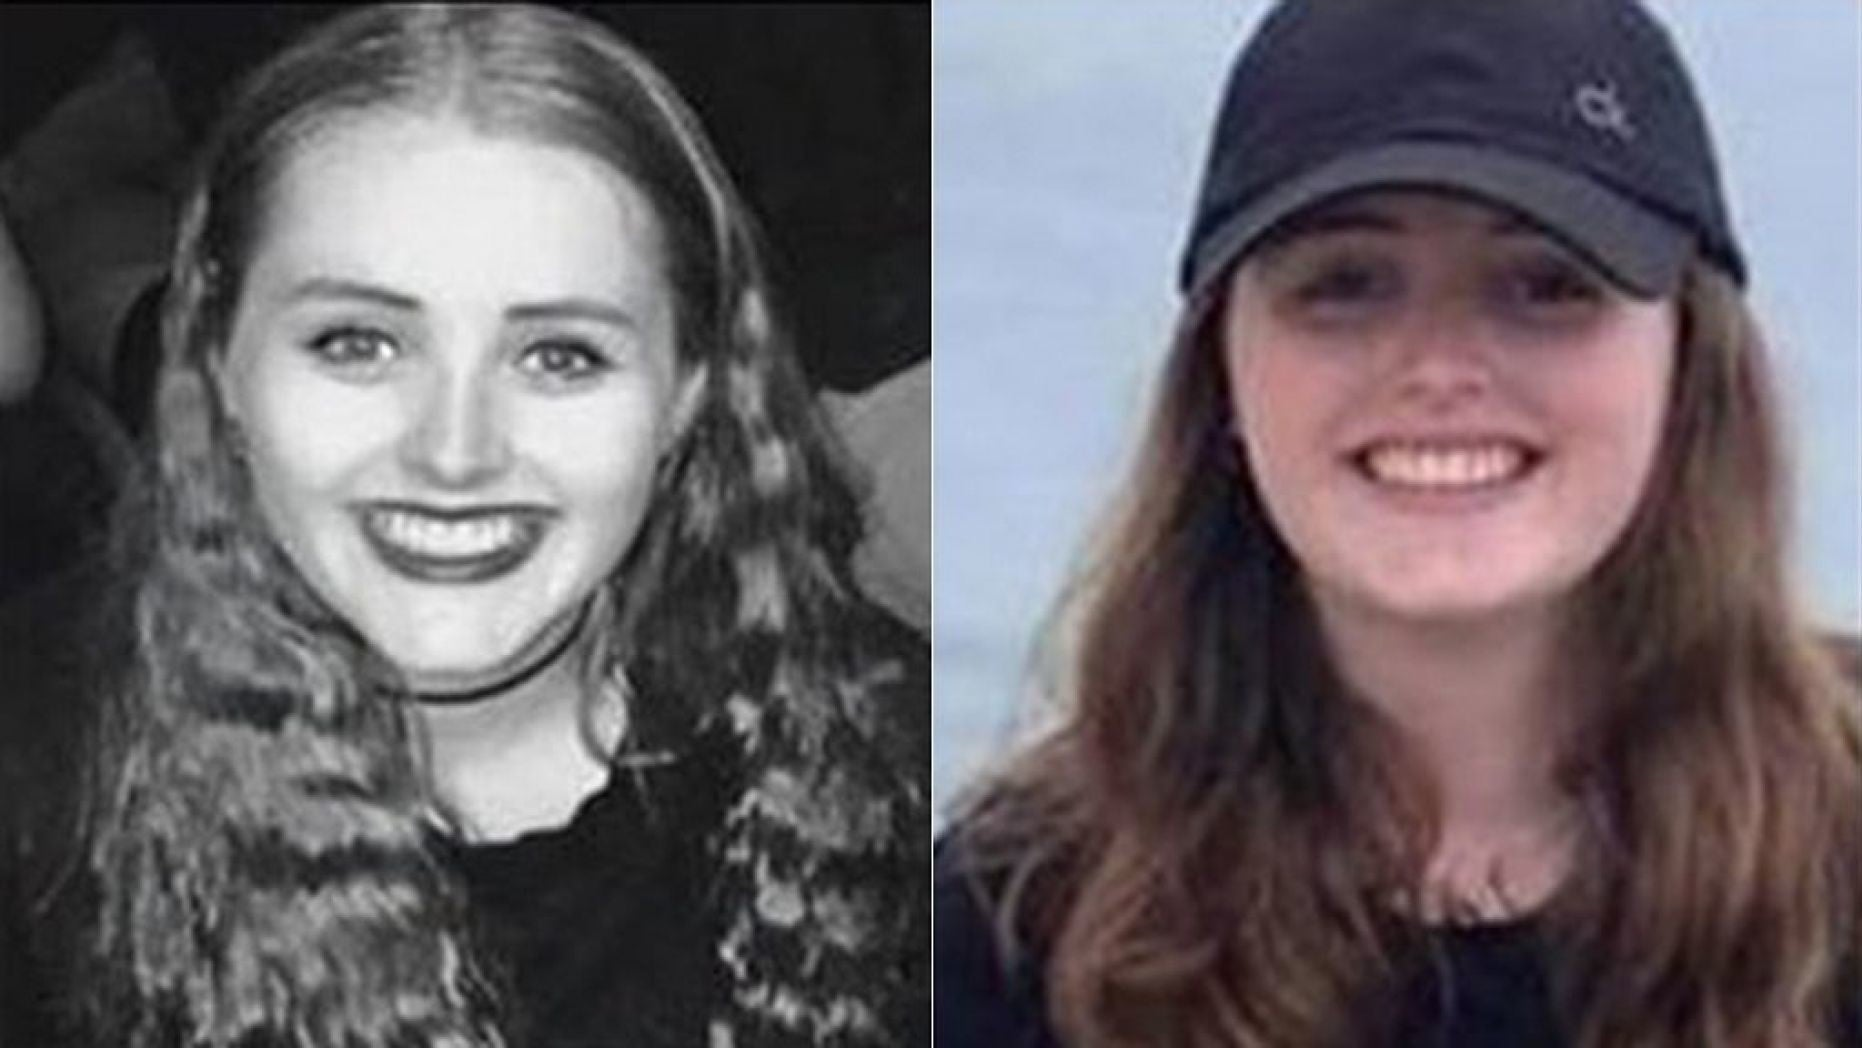 British backpacker's disappearance in New Zealand being treated as suspected murder